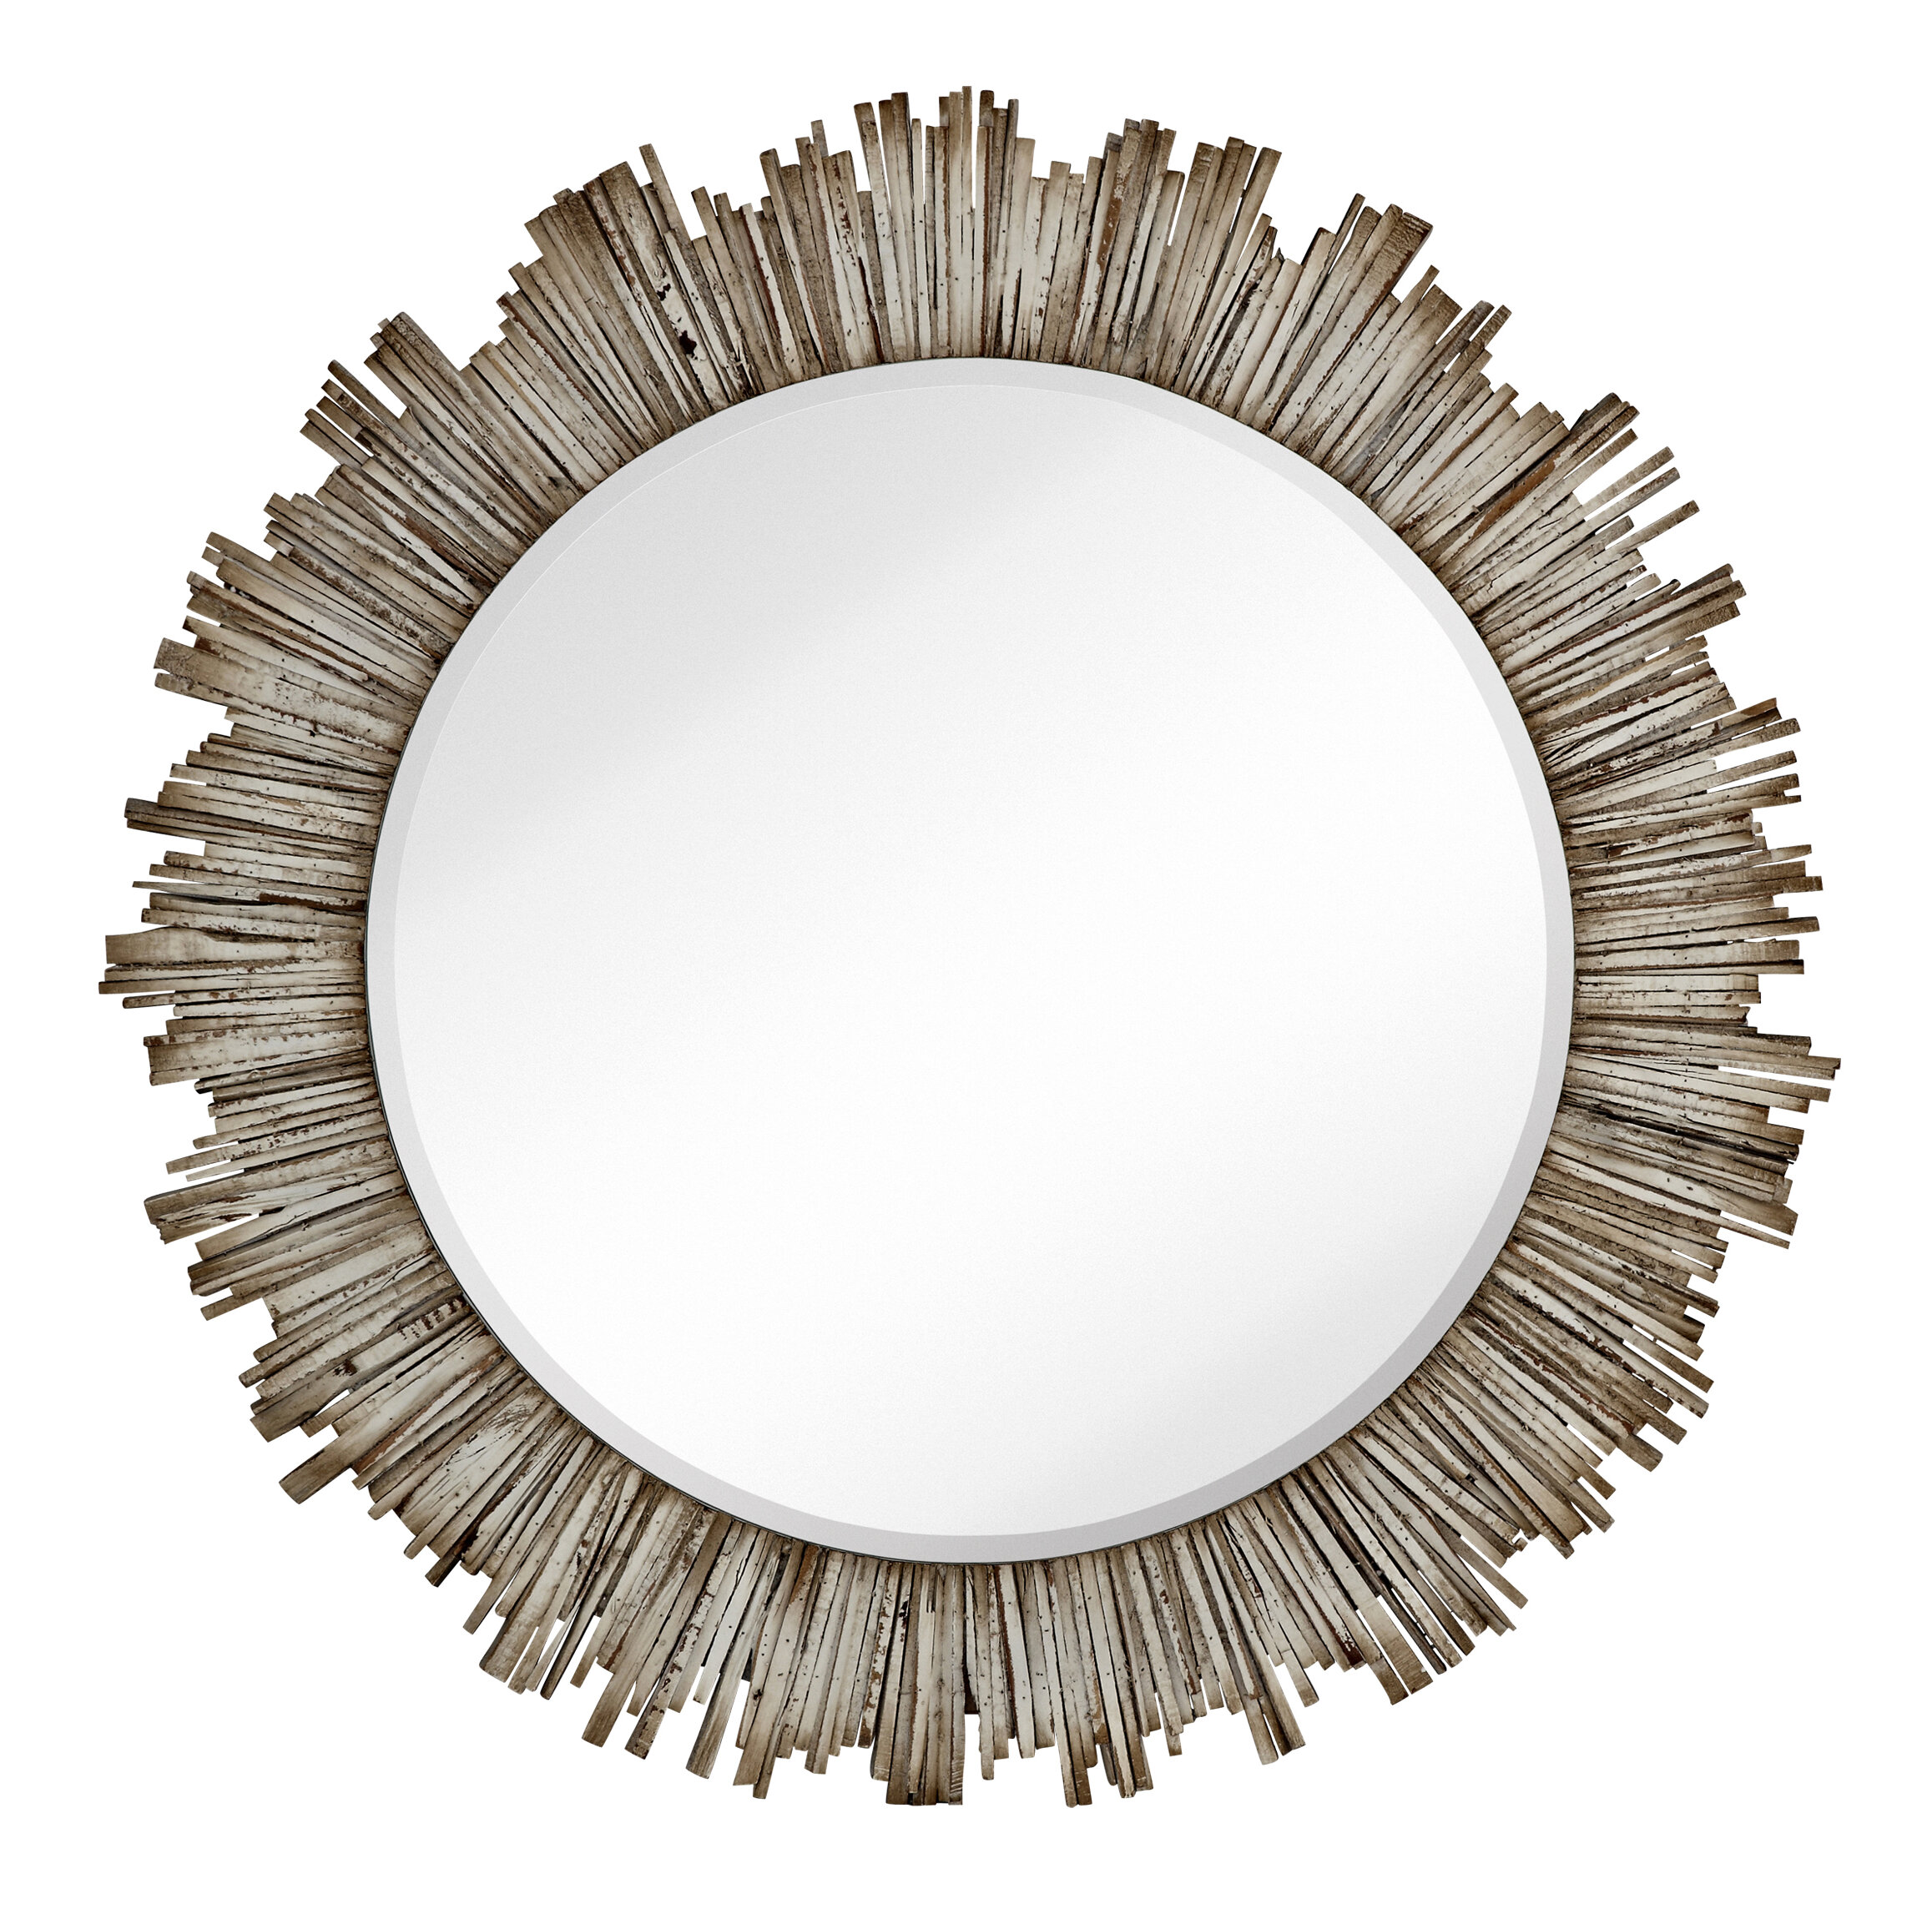 Majestic Mirror Large Round Beveled Accent Mirror With White Washed